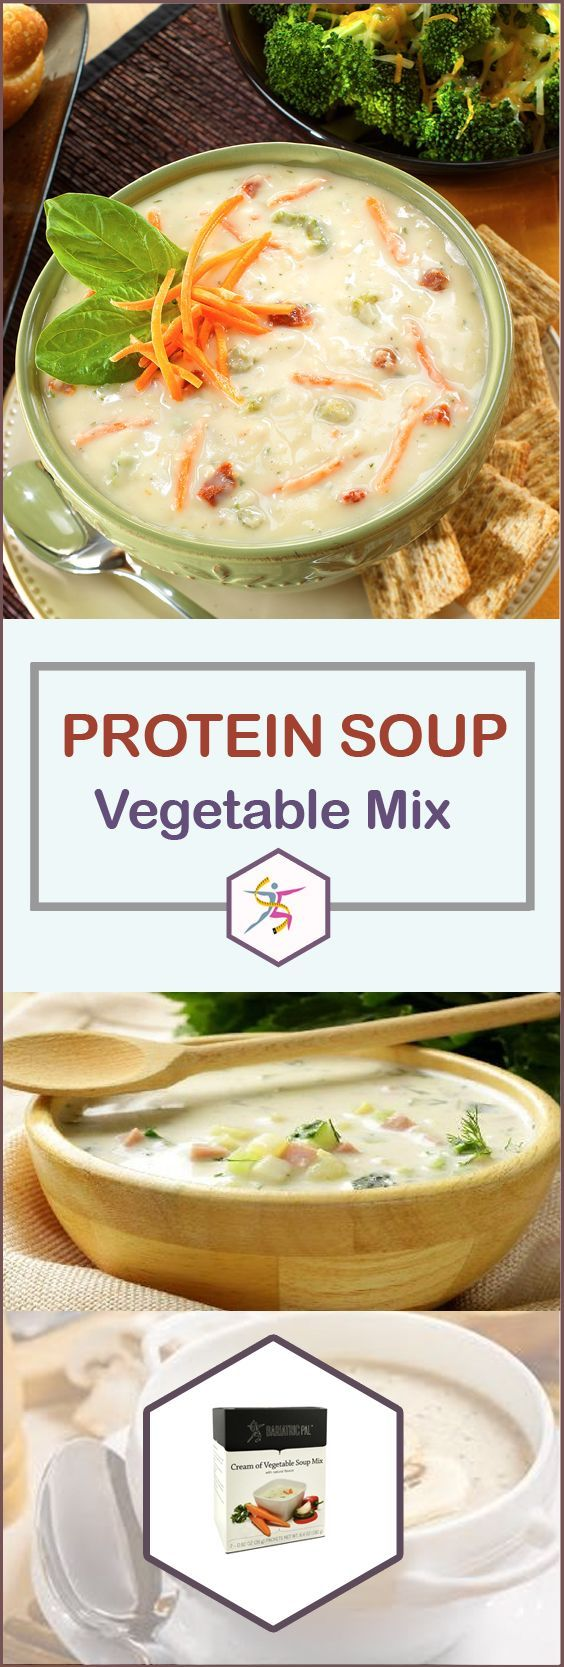 BariatricPal Protein Soup is your mealtime solution. Just add water and enjoy your instant high-protein soup. BariatricPal Protein Soup – Cream of Vegetable is a creamy comfort food without the extra fat and calories. Each bowl has only 90 calories and almost no fat! It has real vegetables like onions, bell peppers, leeks, and carrots, and 15 grams of protein. It can make you feel better pre-op and post-op while giving you the protein you need. 7 packets per box.